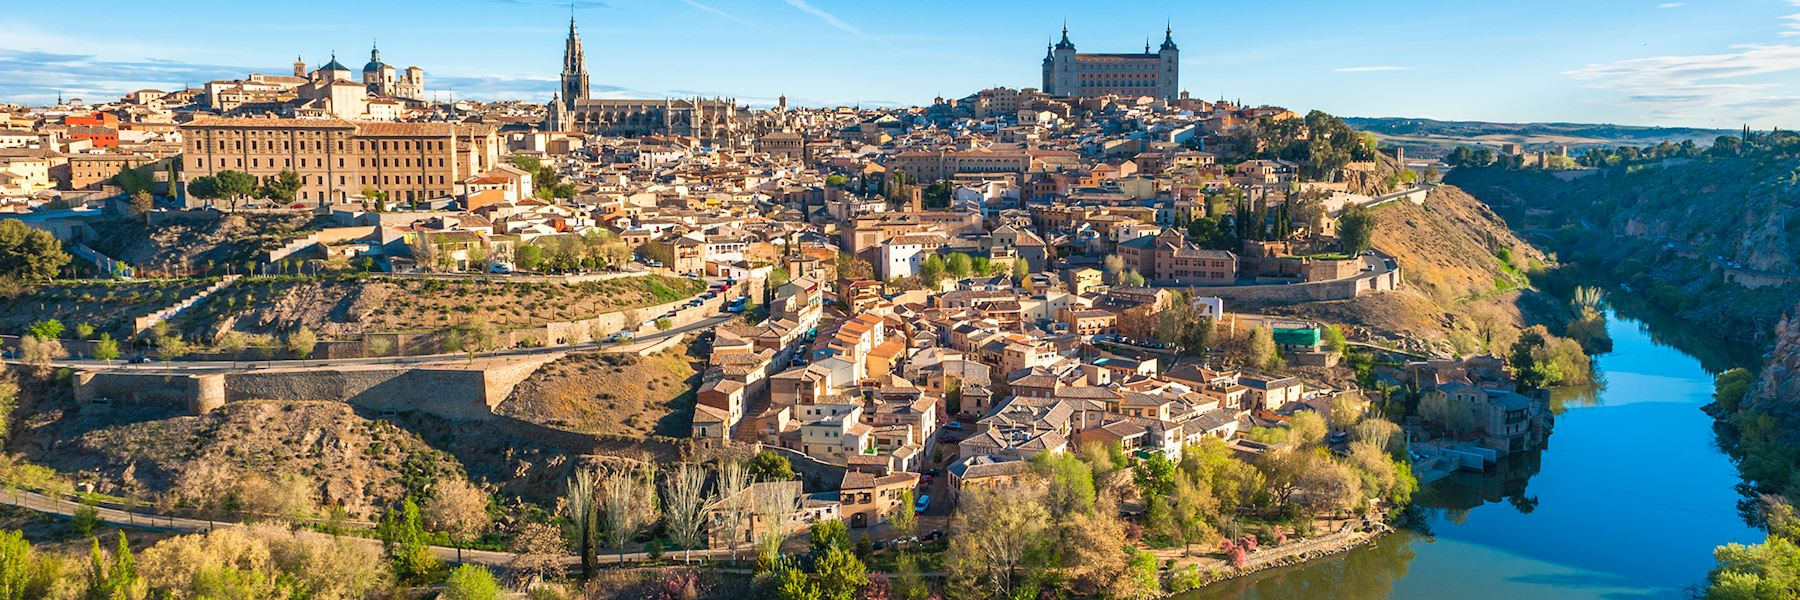 Spain vacations  2019 & 2020